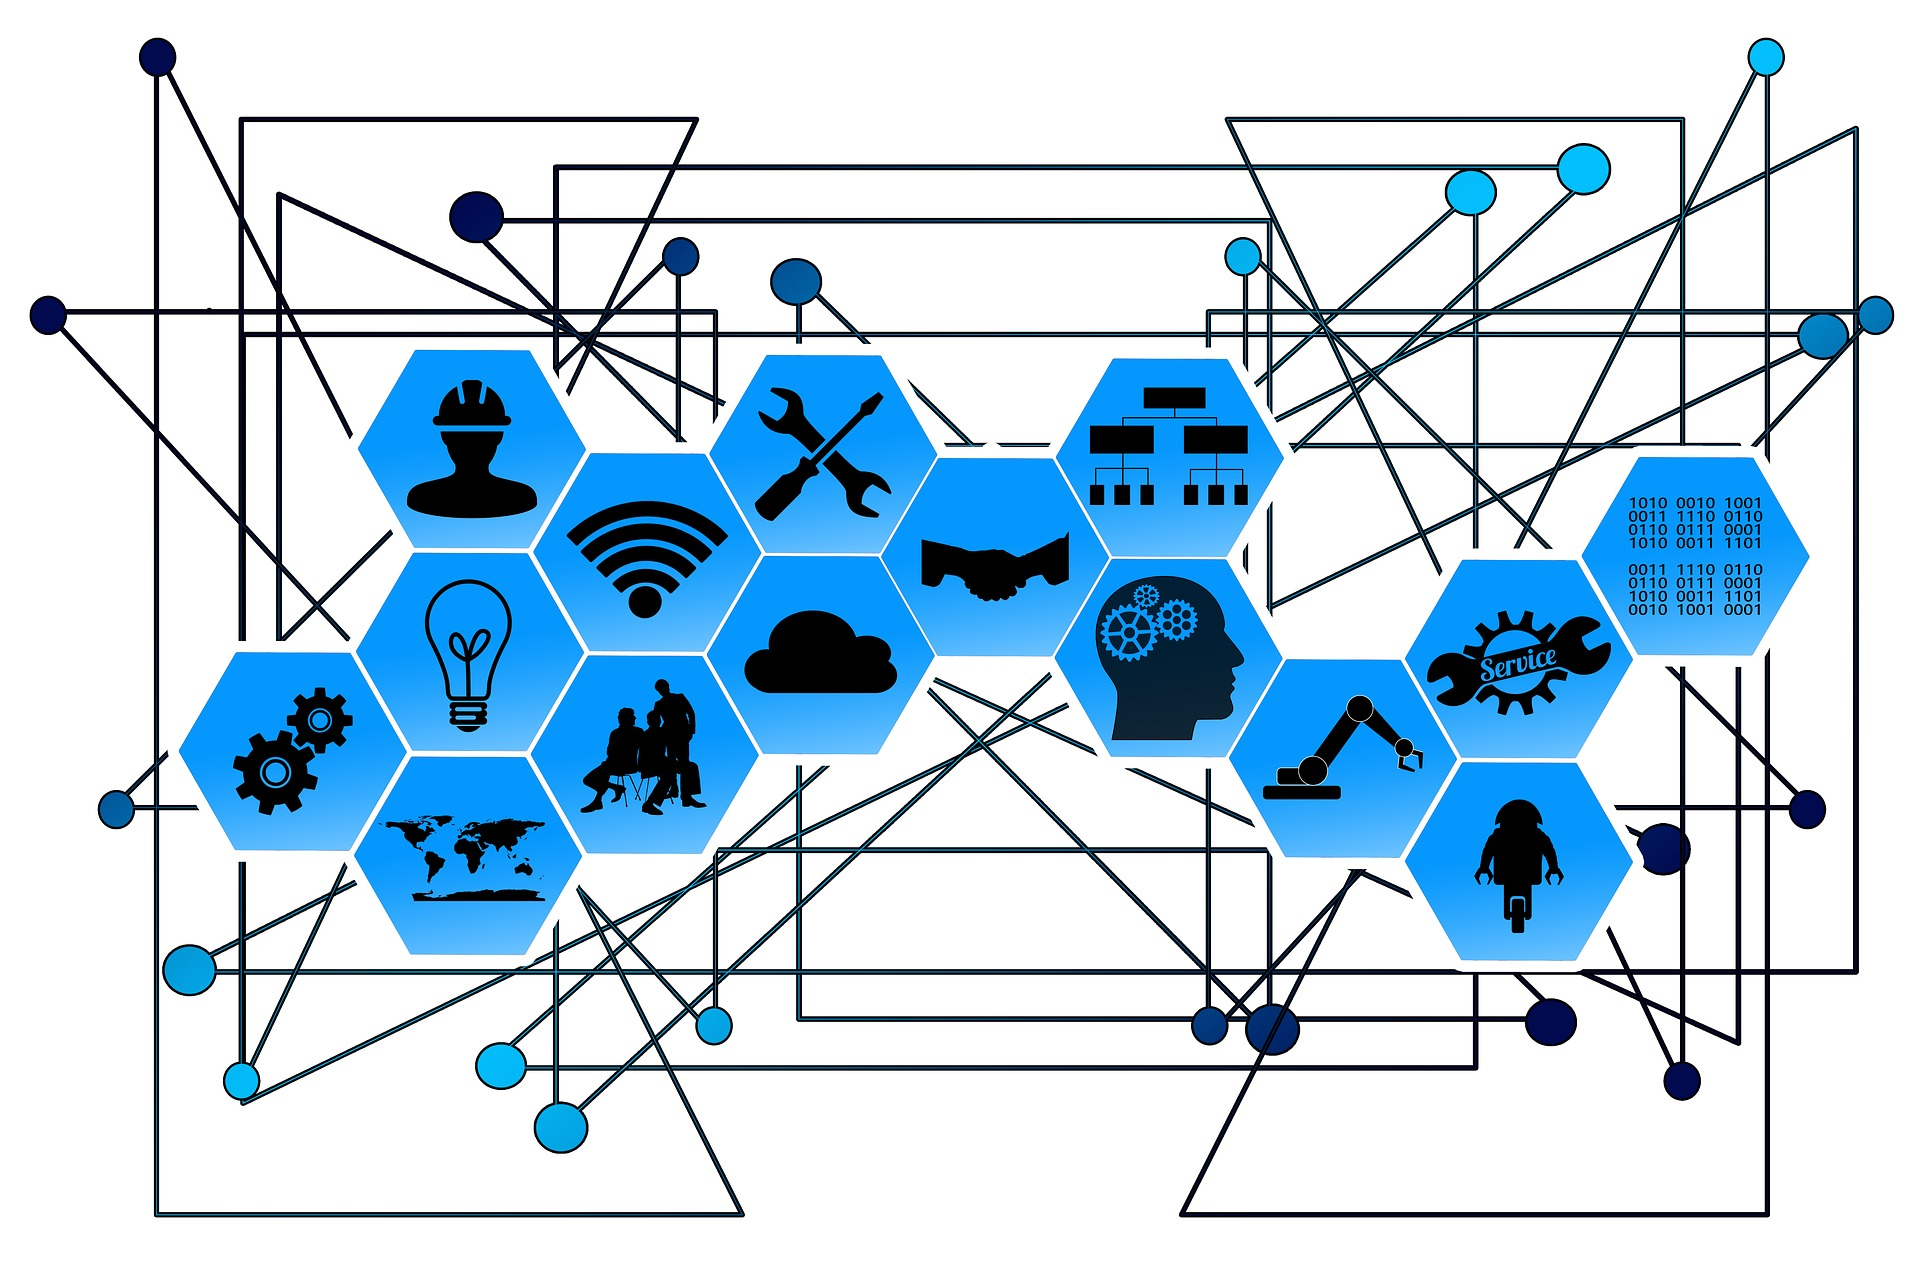 How the Internet of Things (IoT) Impacts Supply Chains